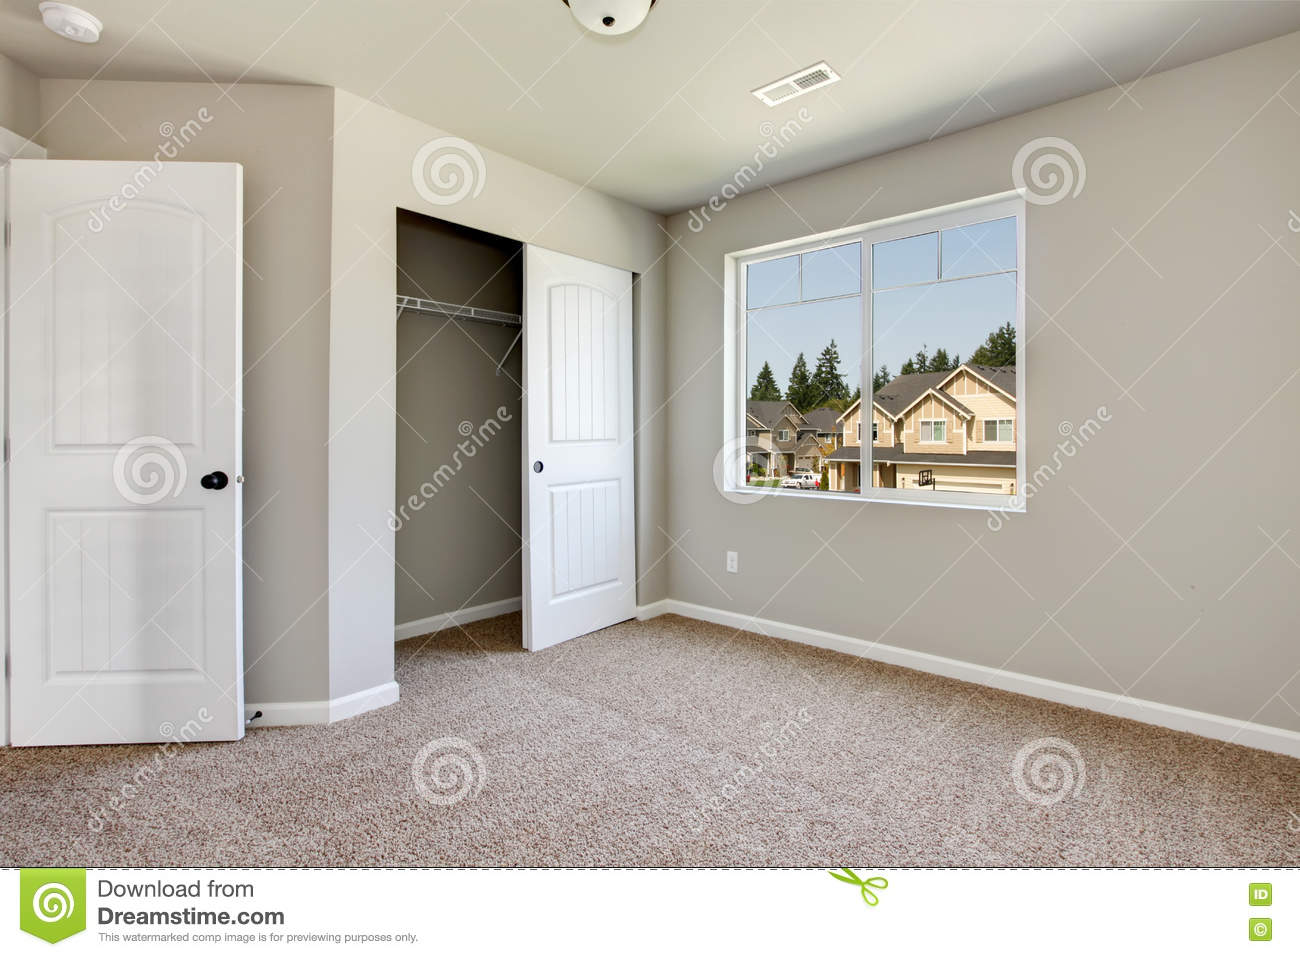 Small Empty Room With Window And Carpet Floor Stock